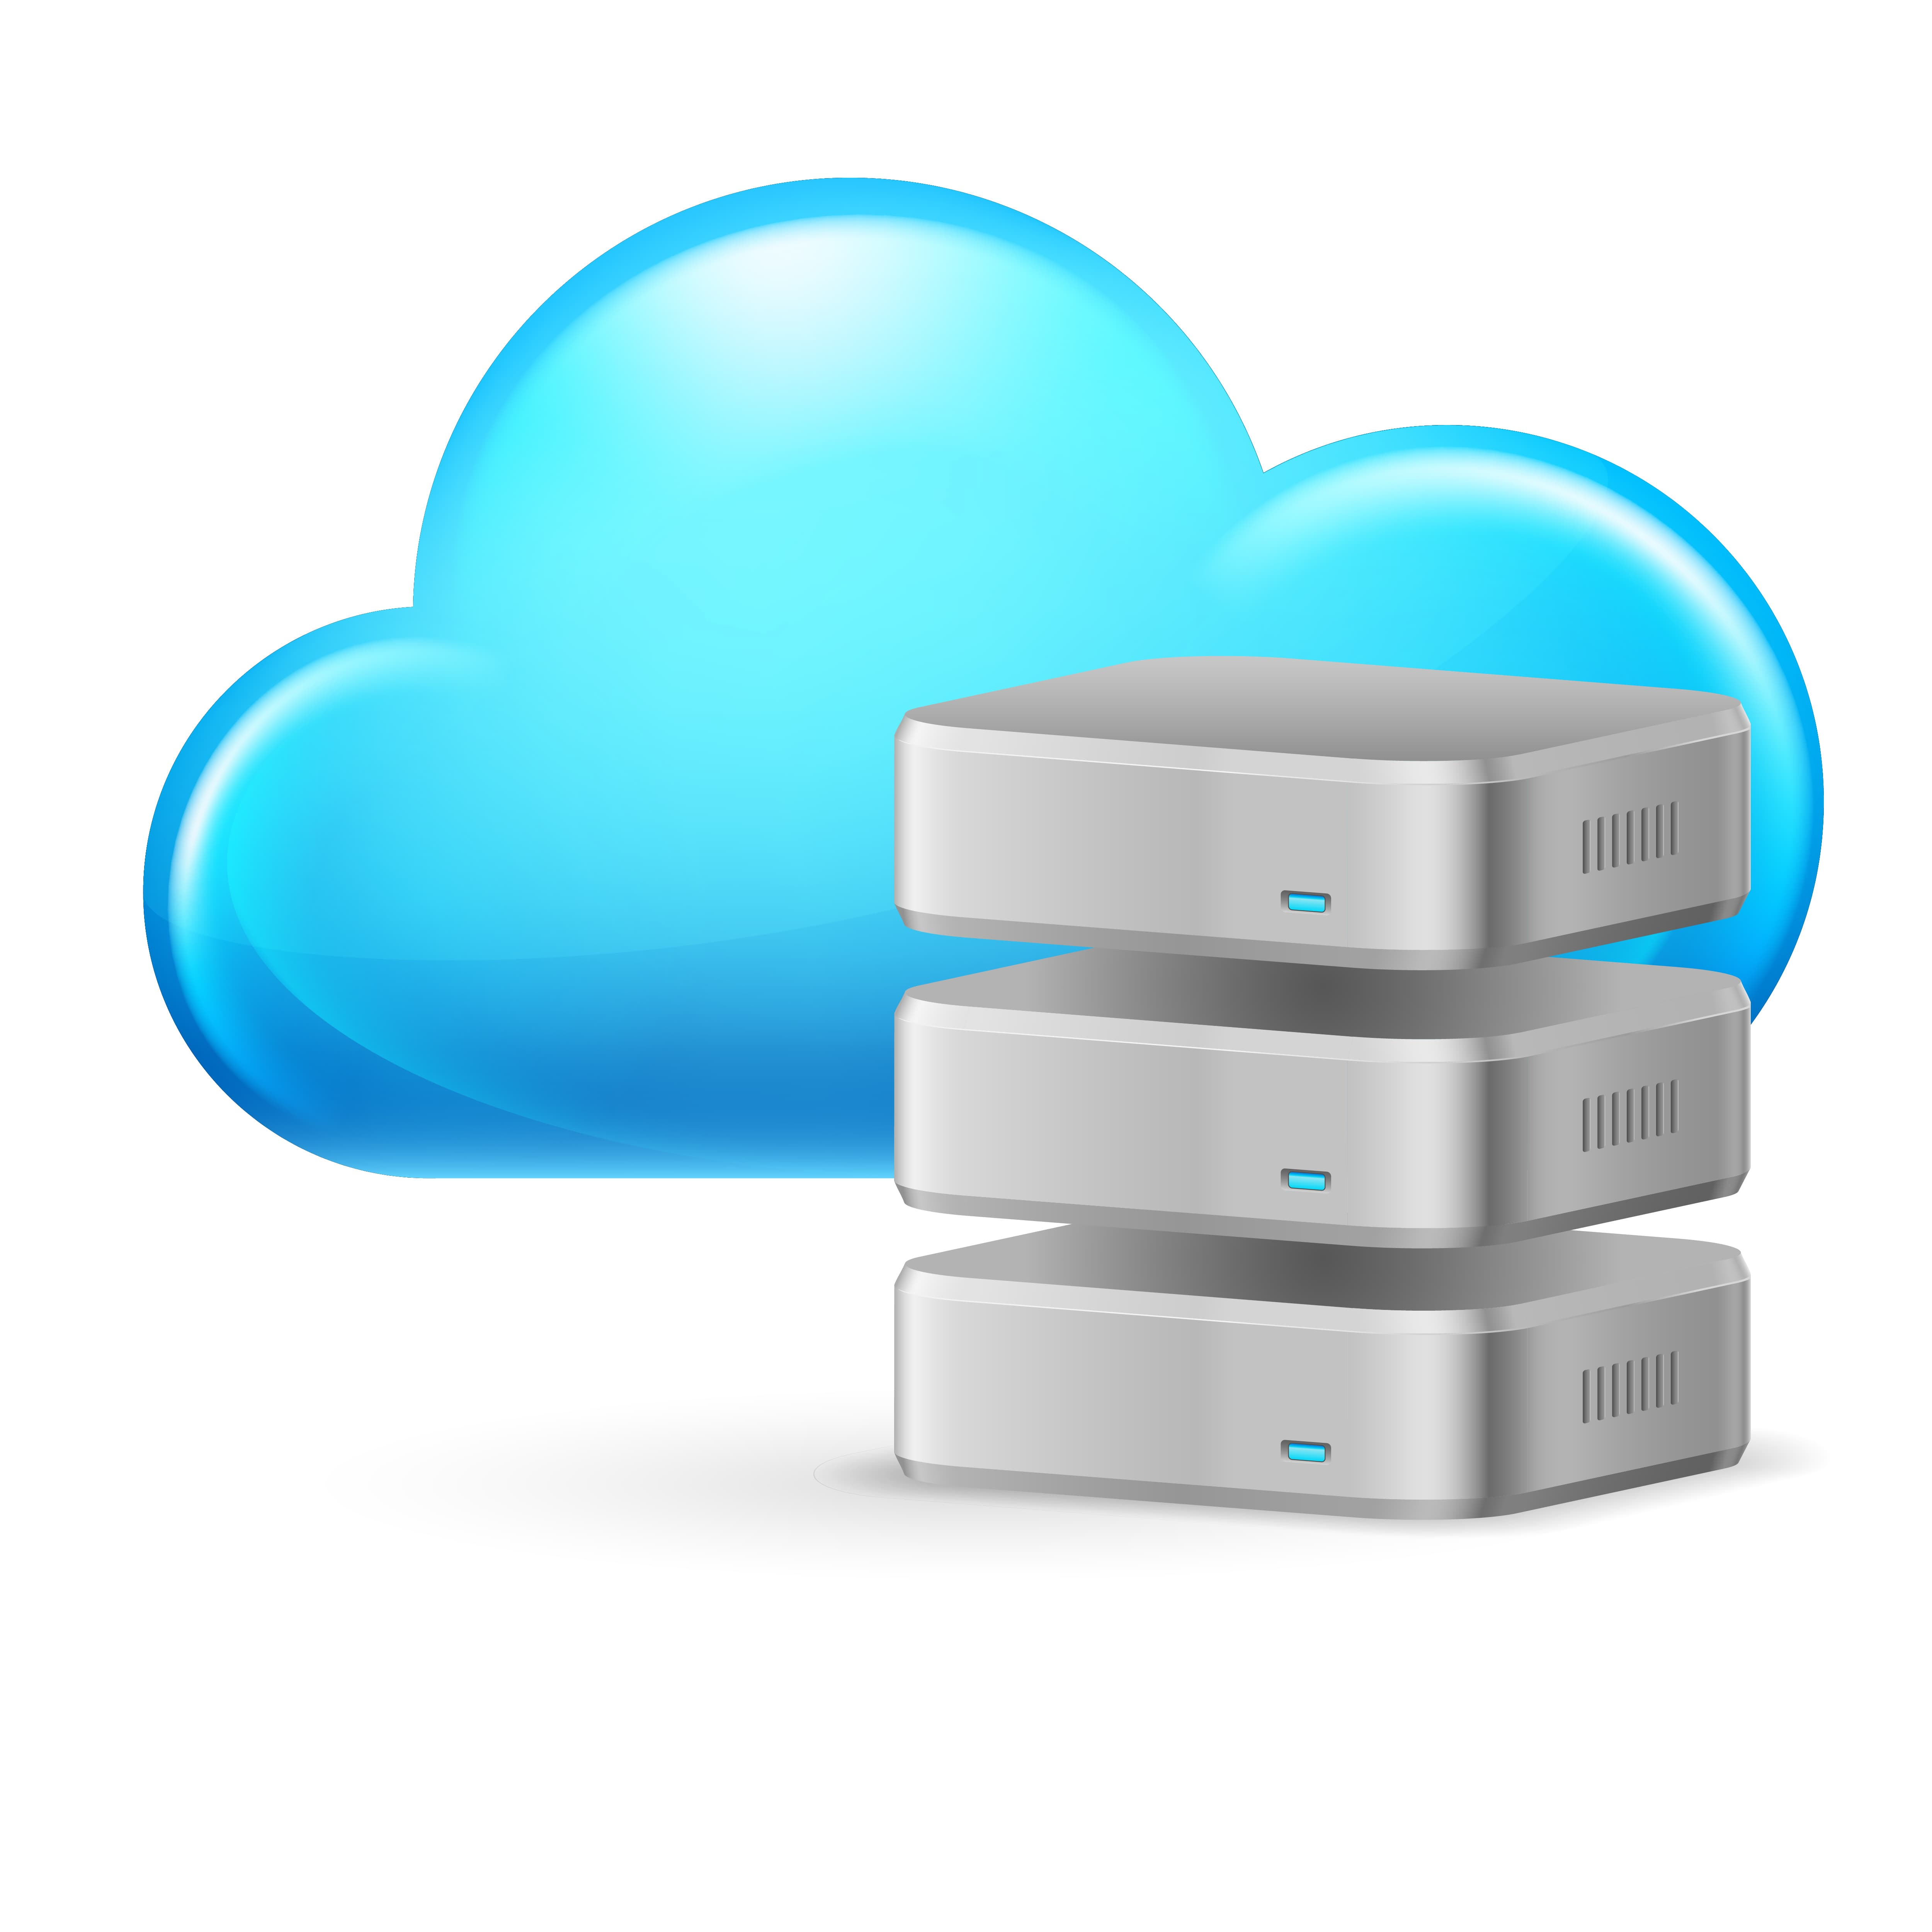 Groovy Why The Old Server With Your Files Is Disappearing Bremmar It Download Free Architecture Designs Ogrambritishbridgeorg